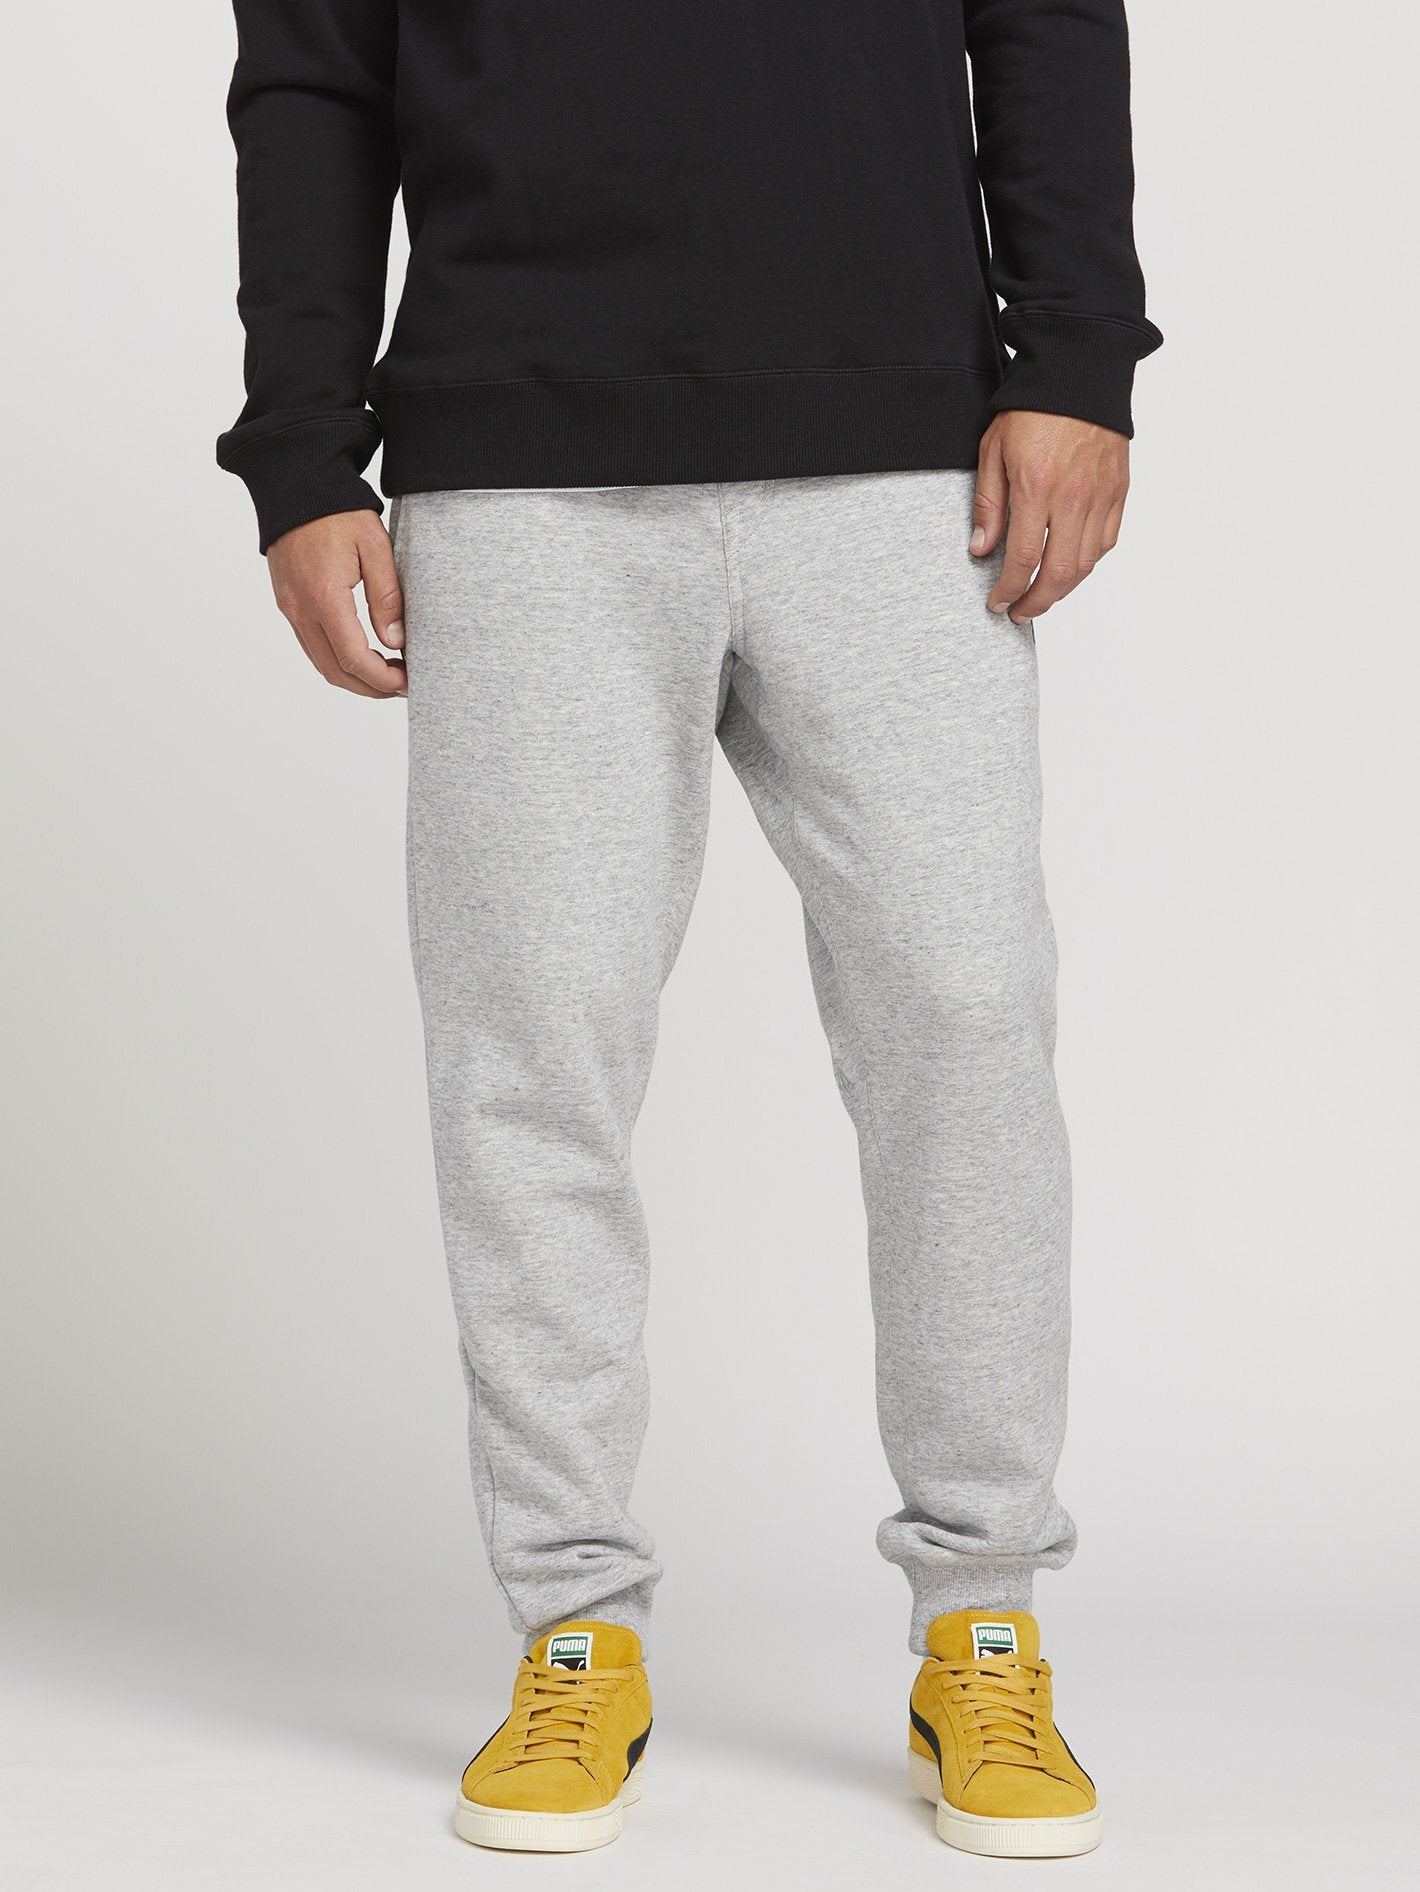 2549447b Mens Clothing Joggers & Sweatpants – Volcom Europe